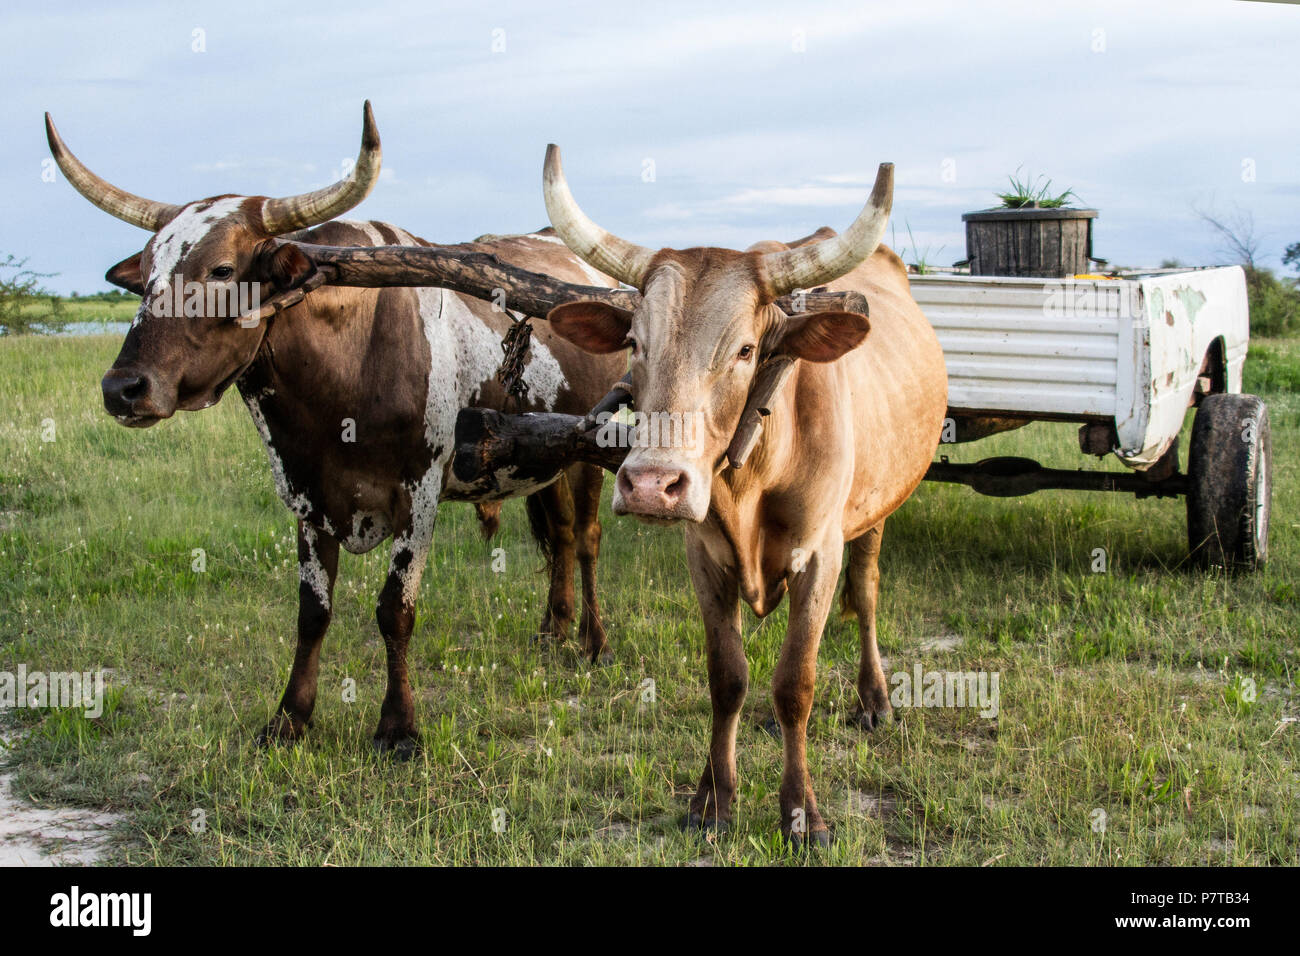 Long horned Oxen pulling a cart on the banks of the Kavango river between Namibia and Angola. - Stock Image